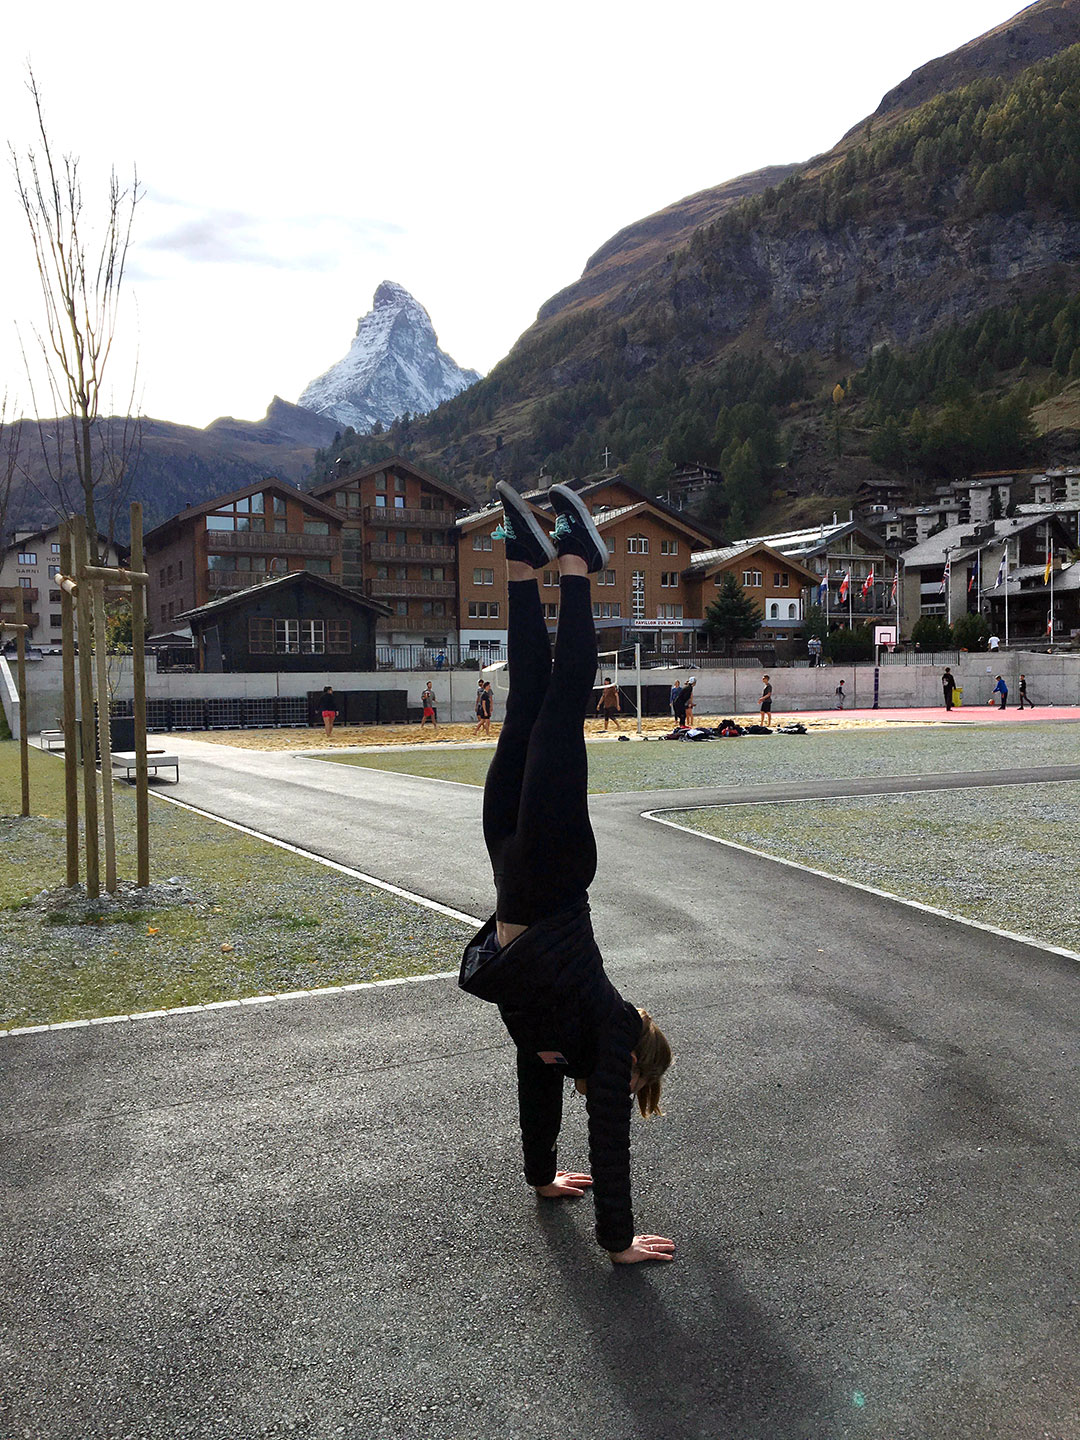 Obligatory Handstand Photo with the Matterhorn